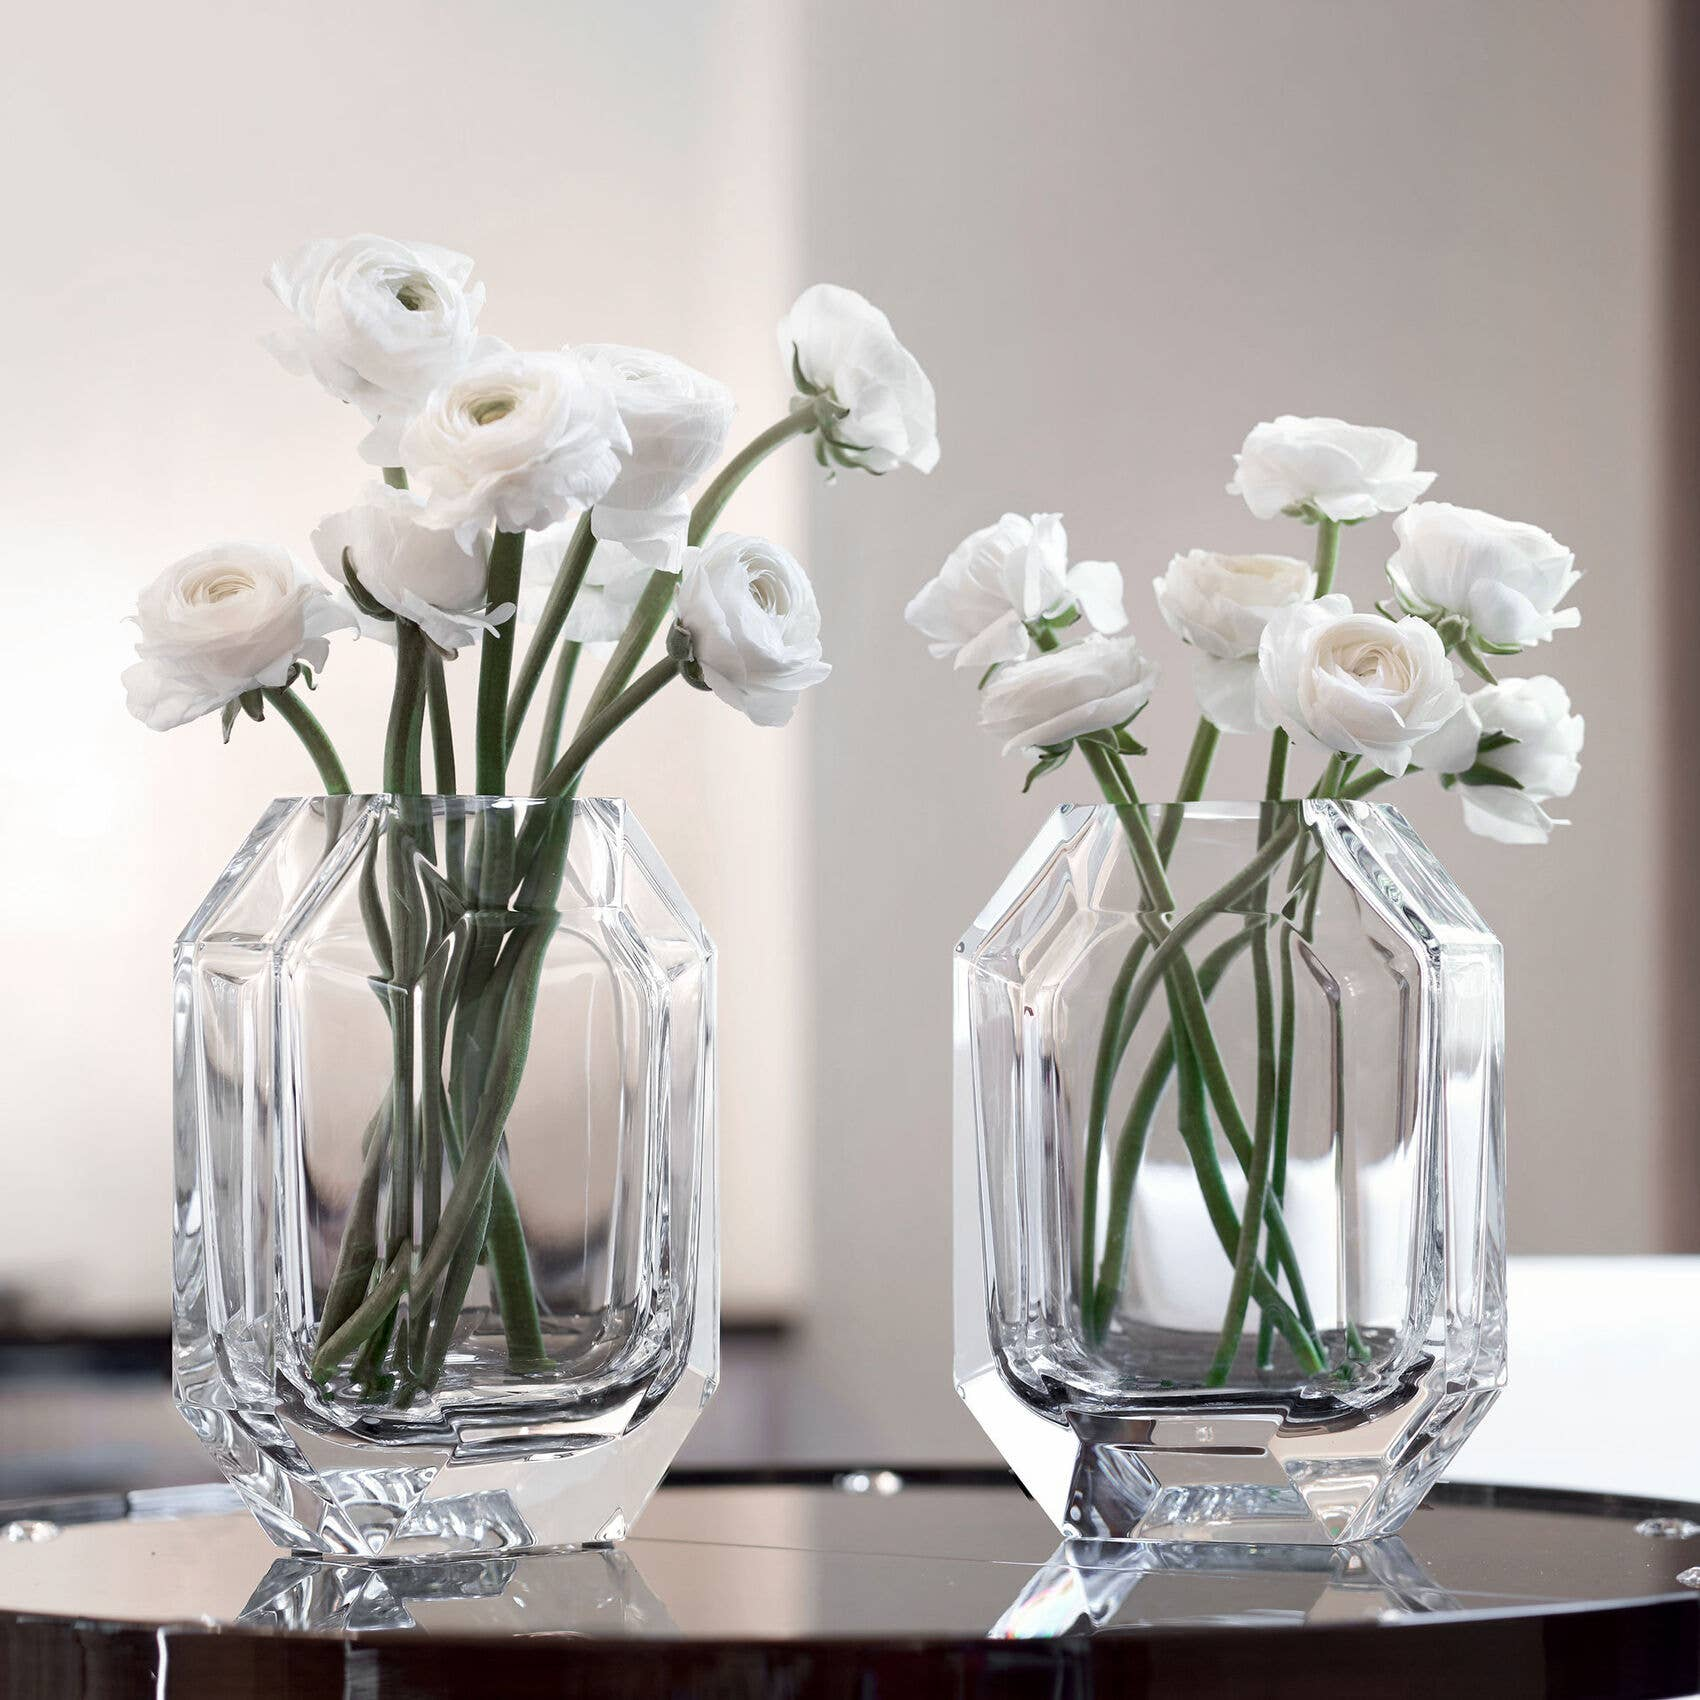 Baccarat Octogone vase in clear with white ranunculus flowers